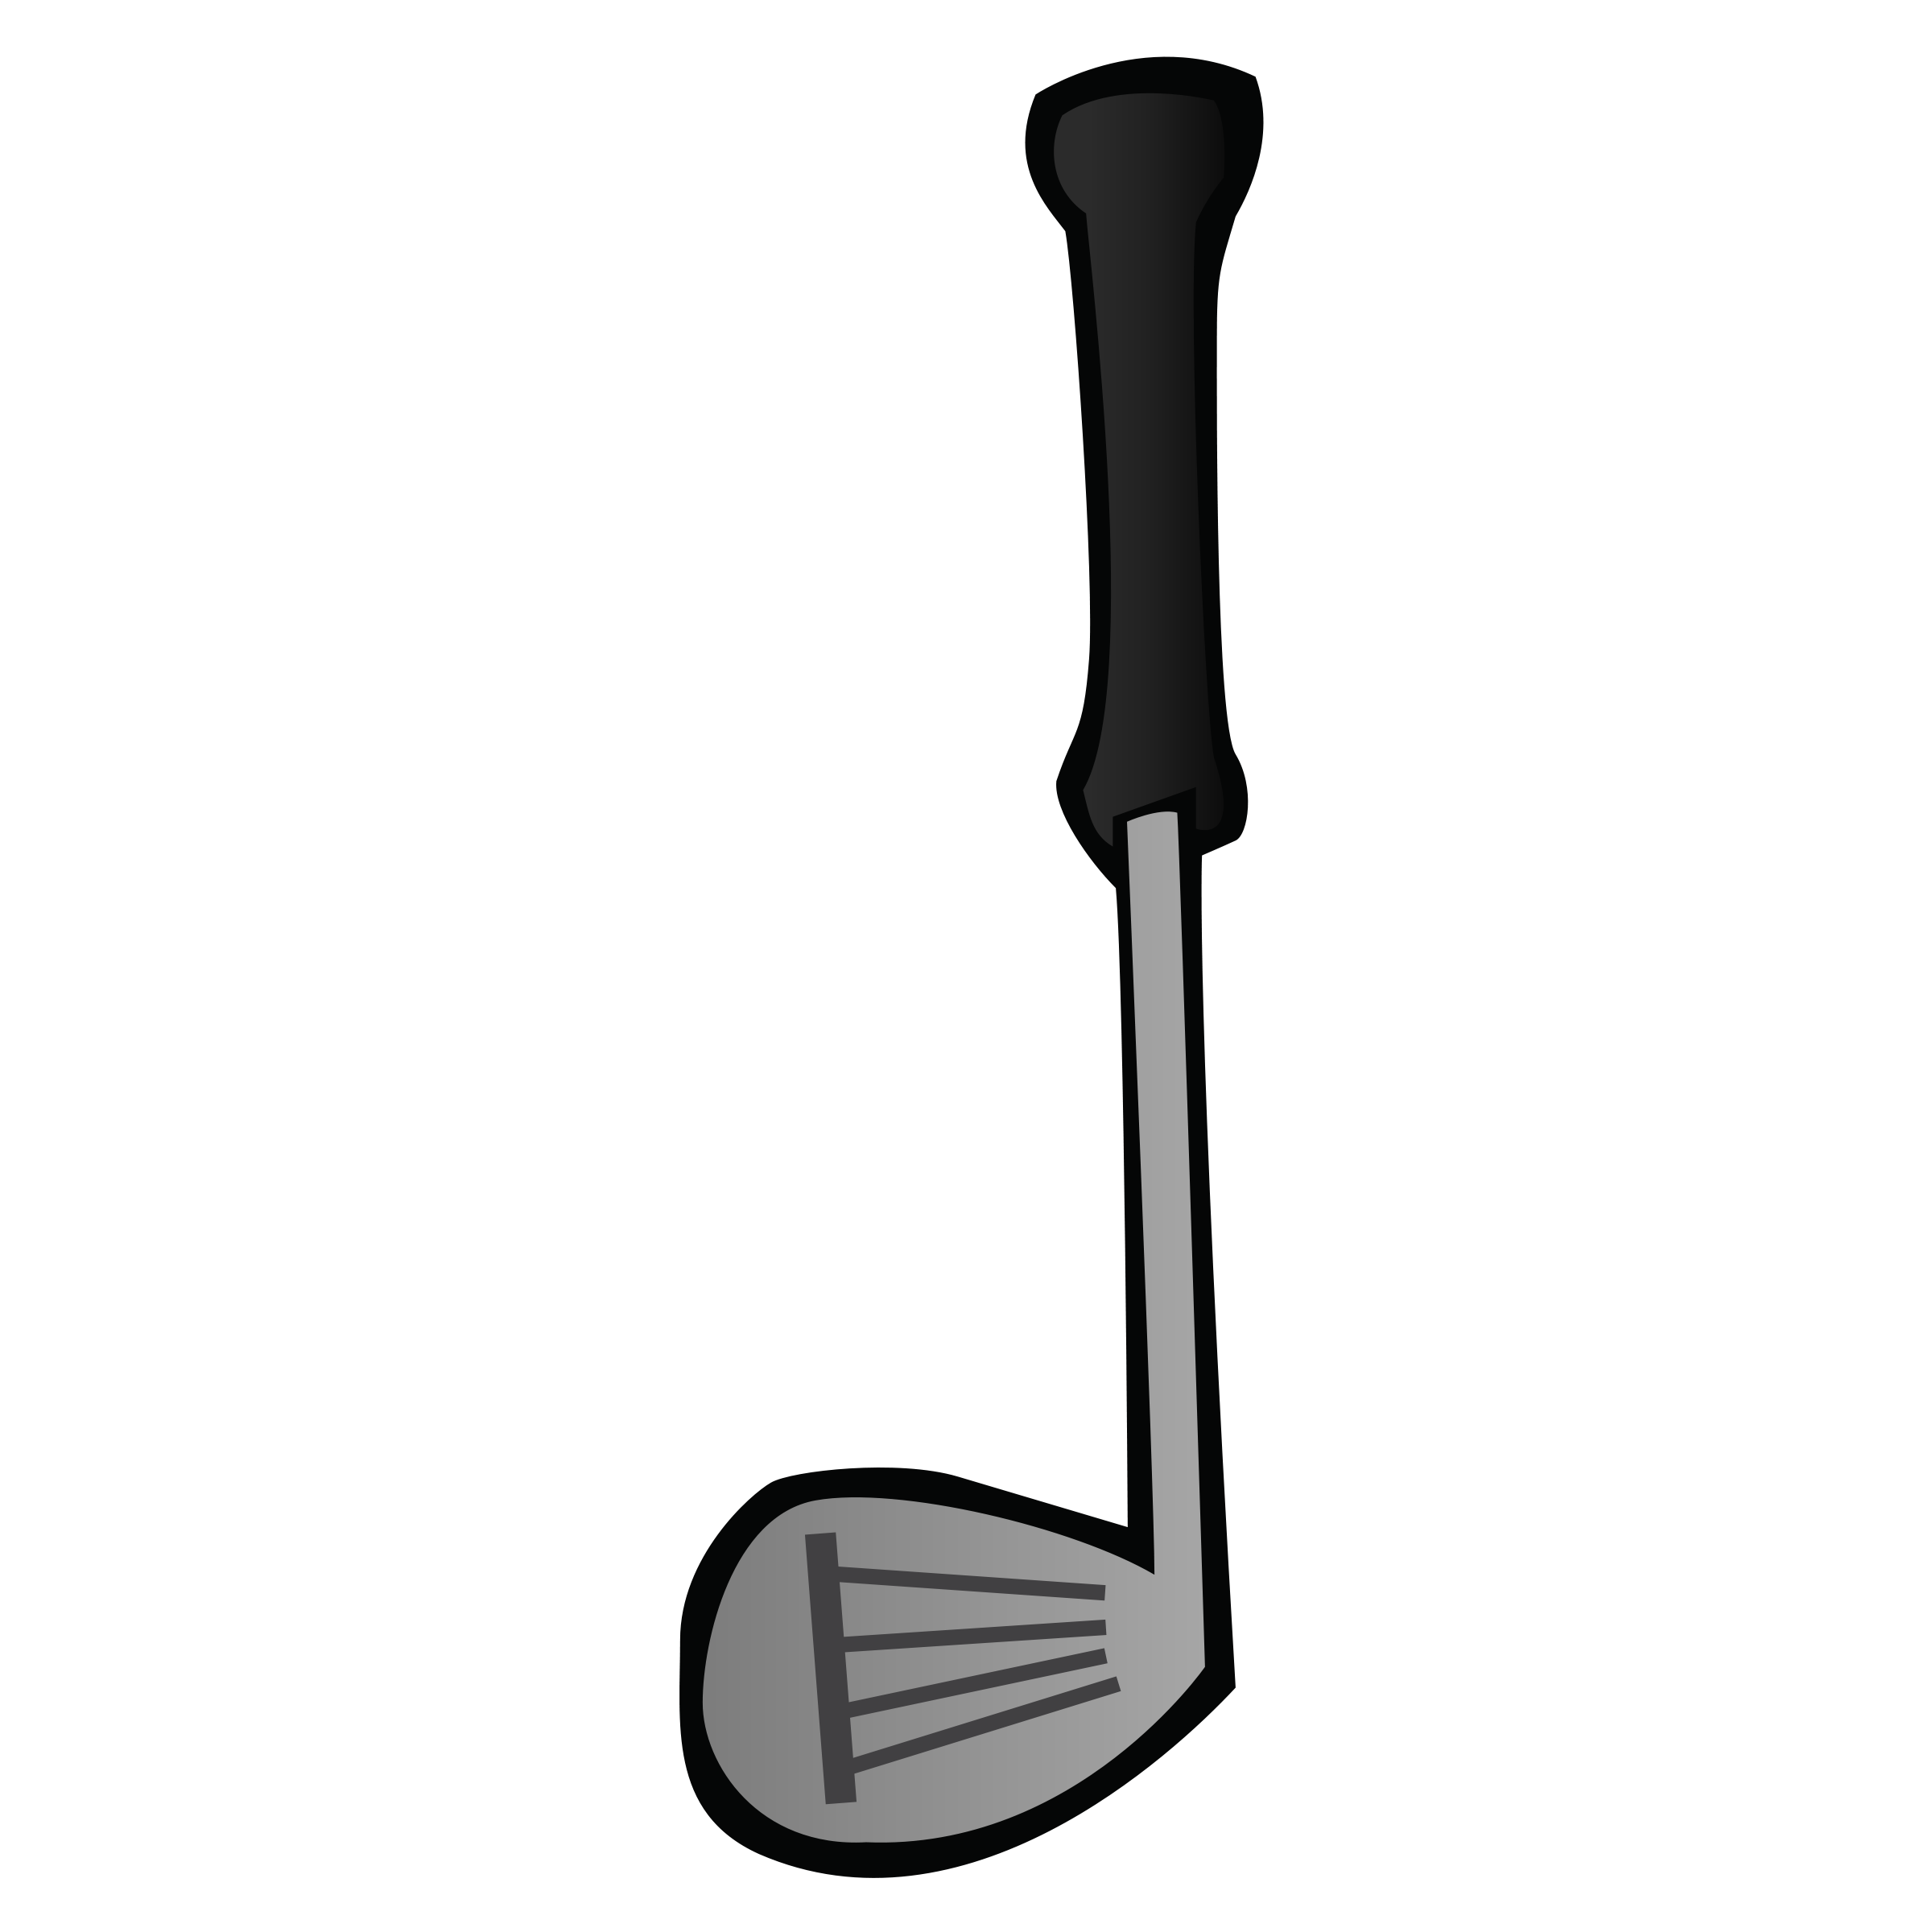 Cross golf clubs clipart png download Crossed Golf Clubs With Golf Ball | Clipart Panda - Free Clipart Images png download